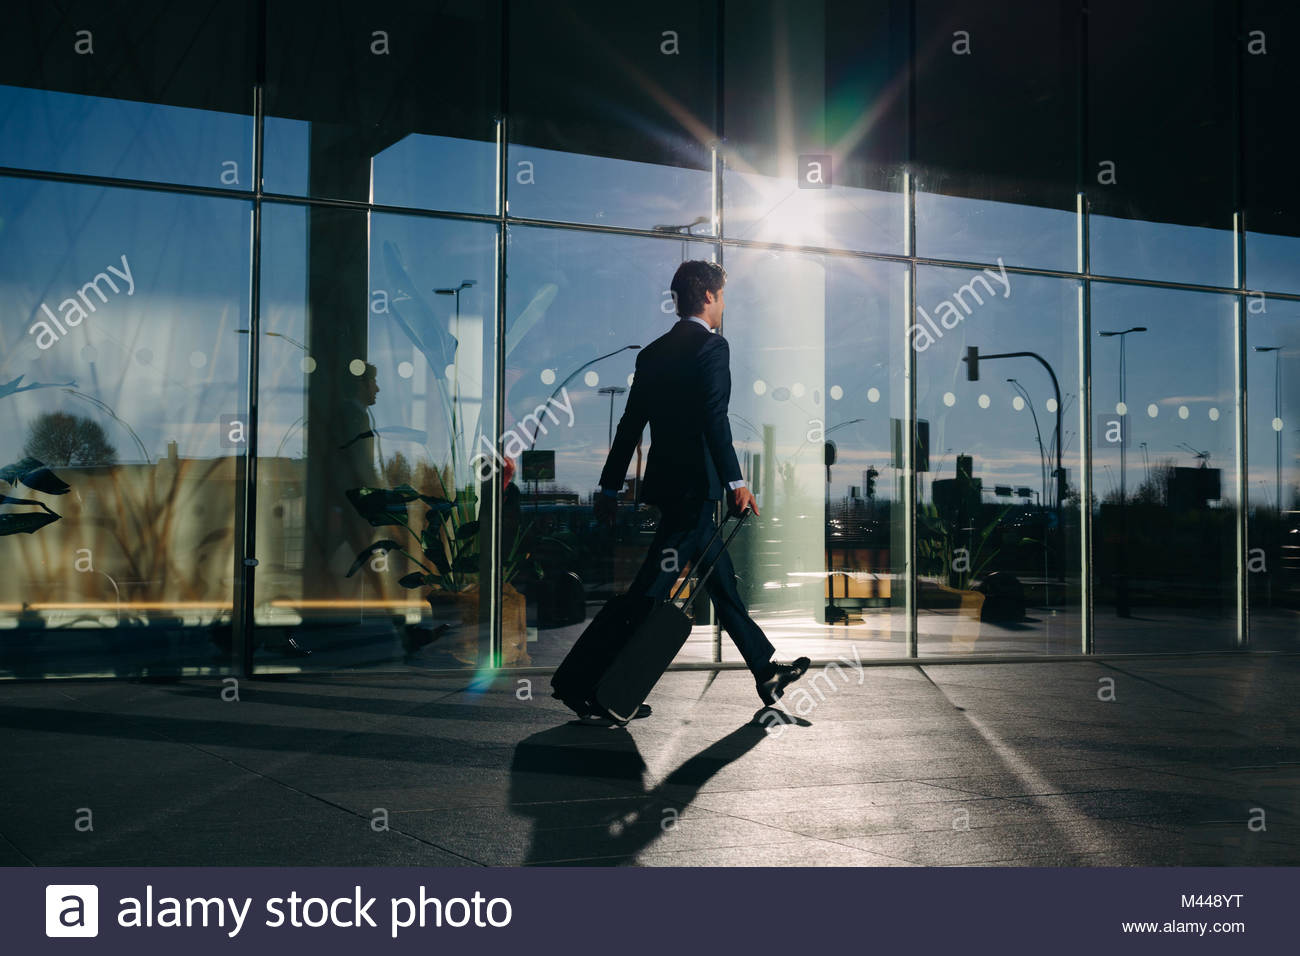 Businessman with wheeled luggage passing glass building, Malpensa, Milan - Stock Image